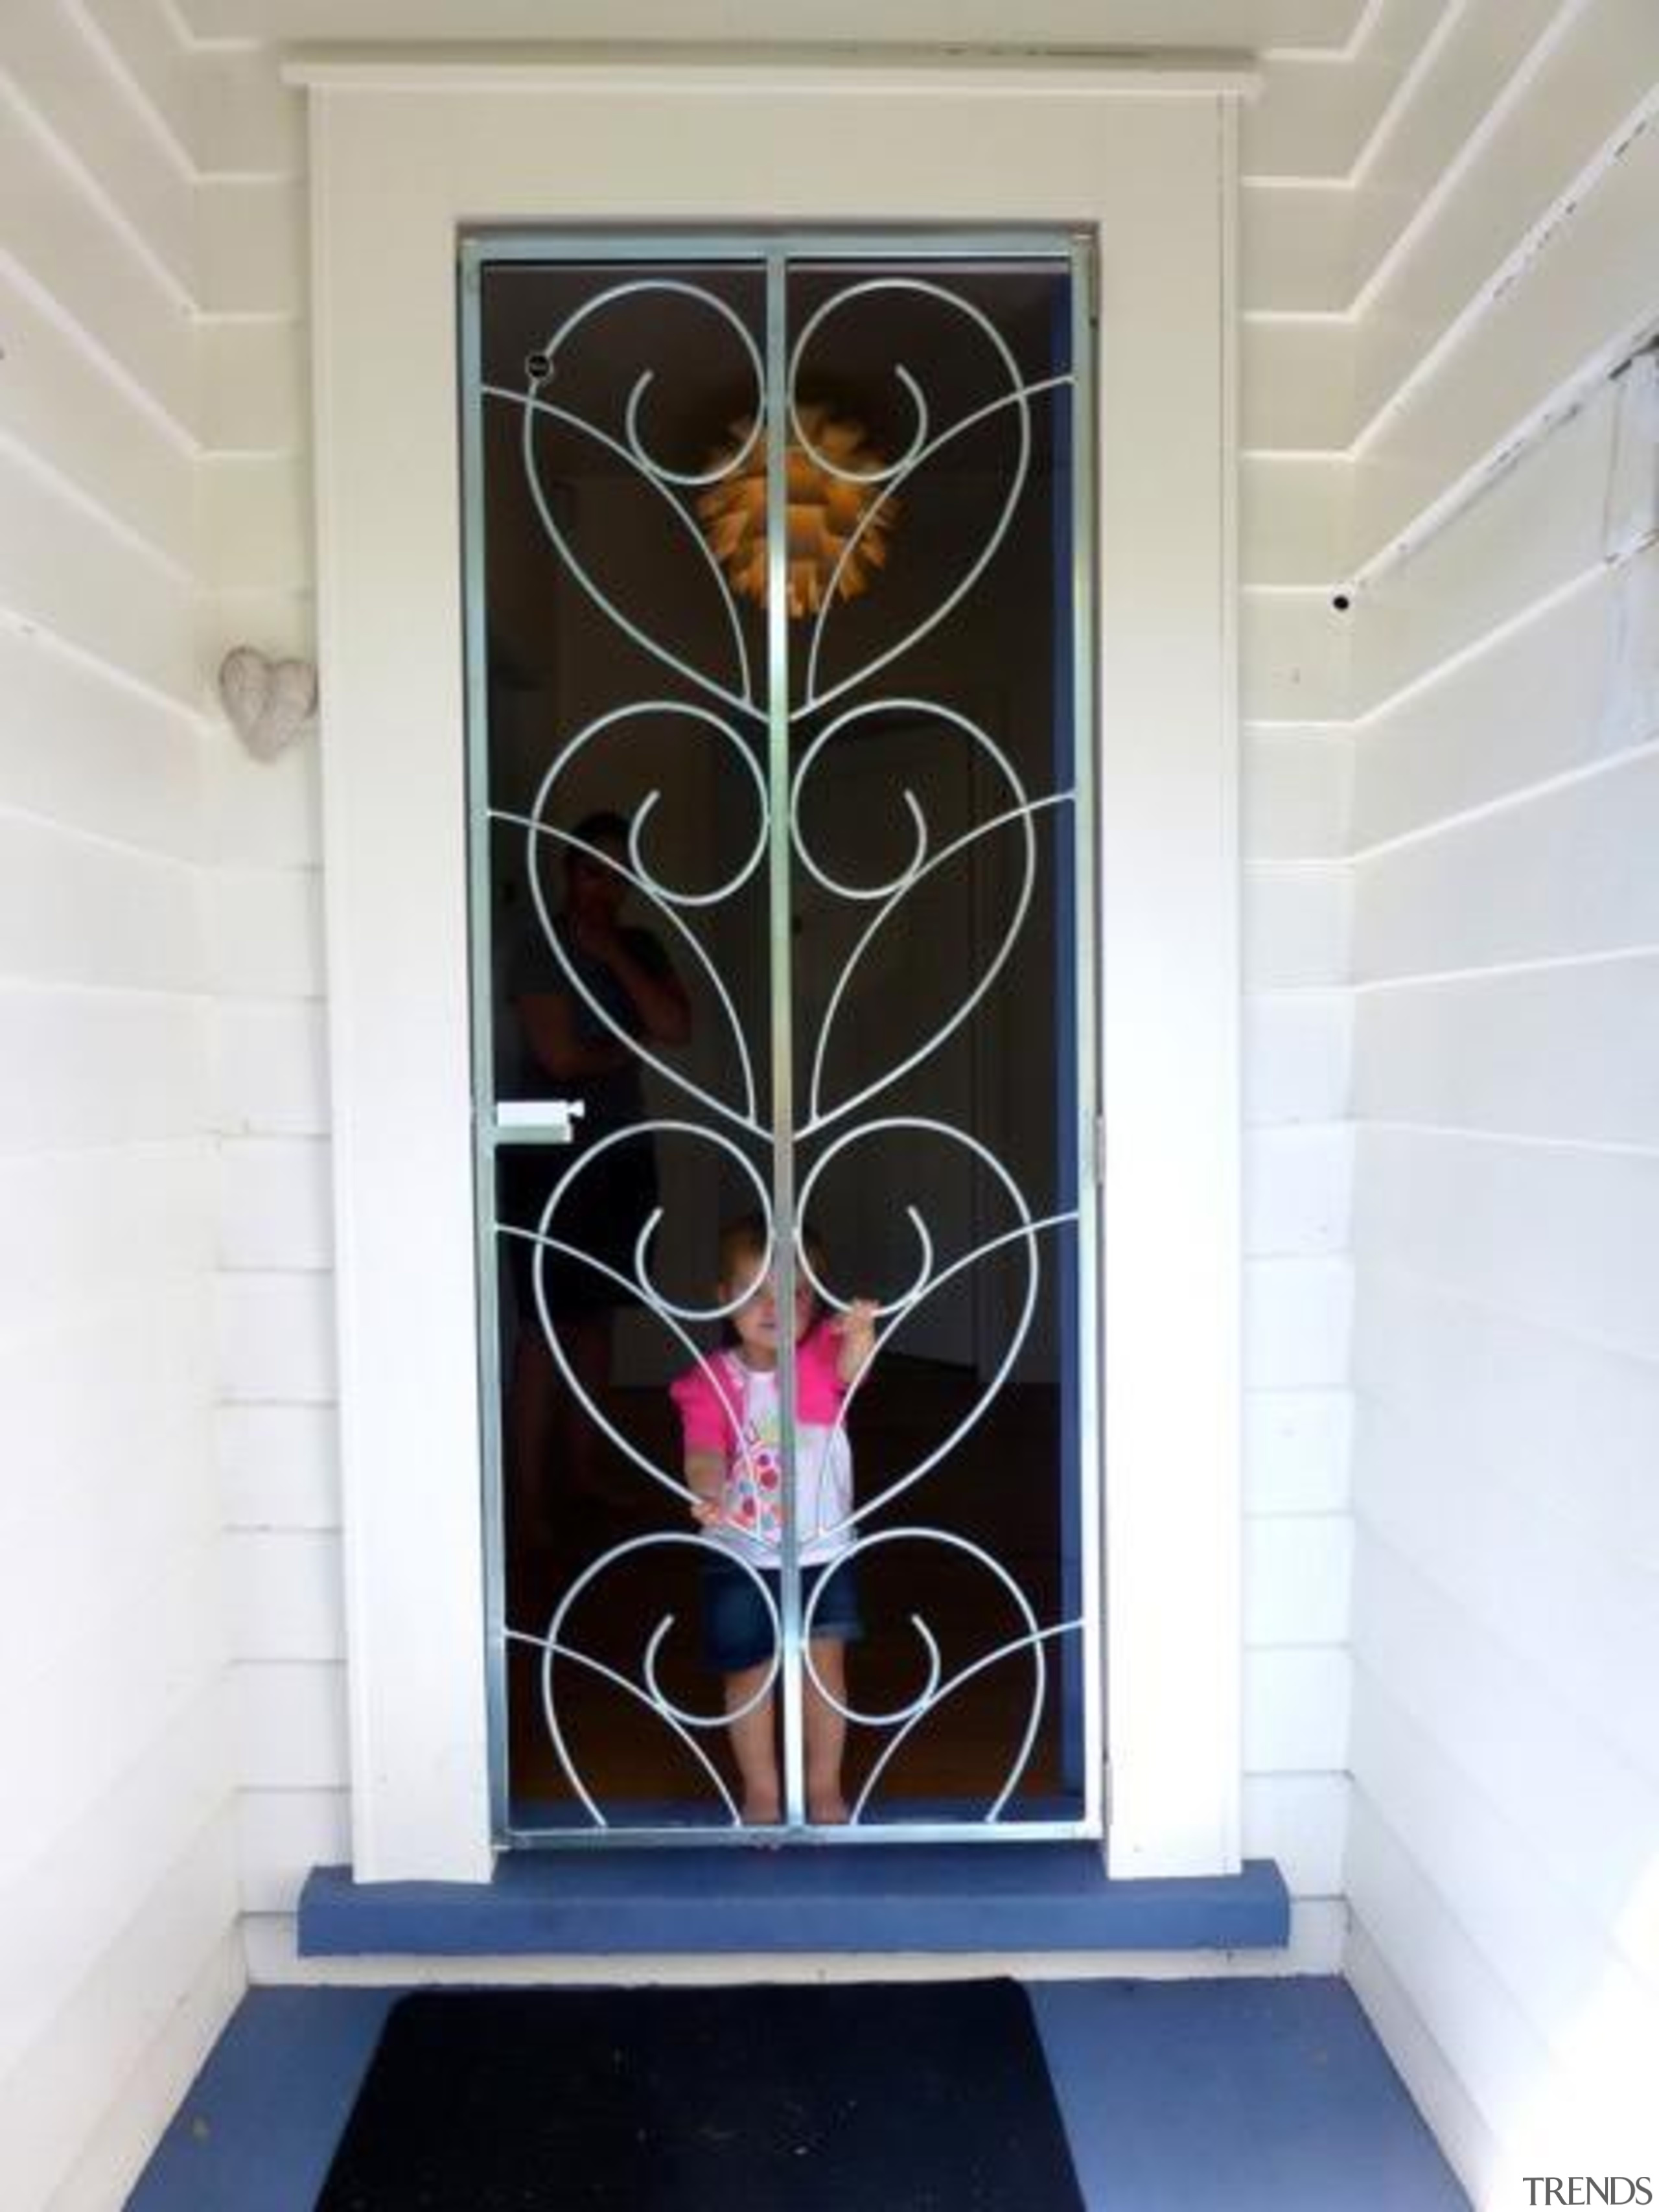 Have you been looking for something a little door, glass, interior design, structure, window, white, gray